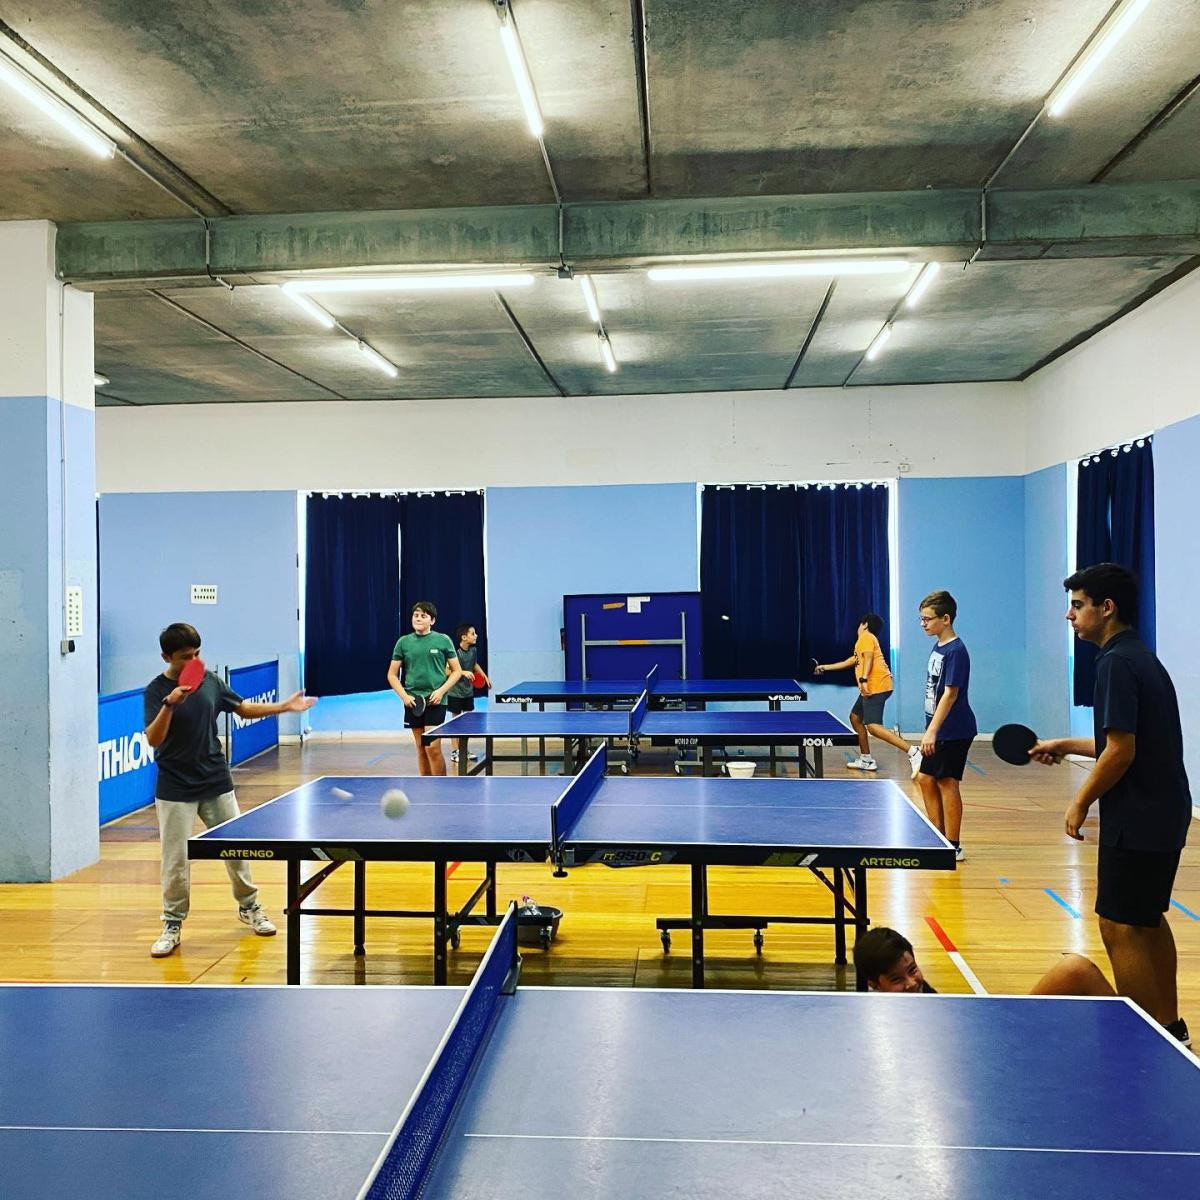 STAGE SPORTIF PINGPONG VACANCES PAQUES 2021